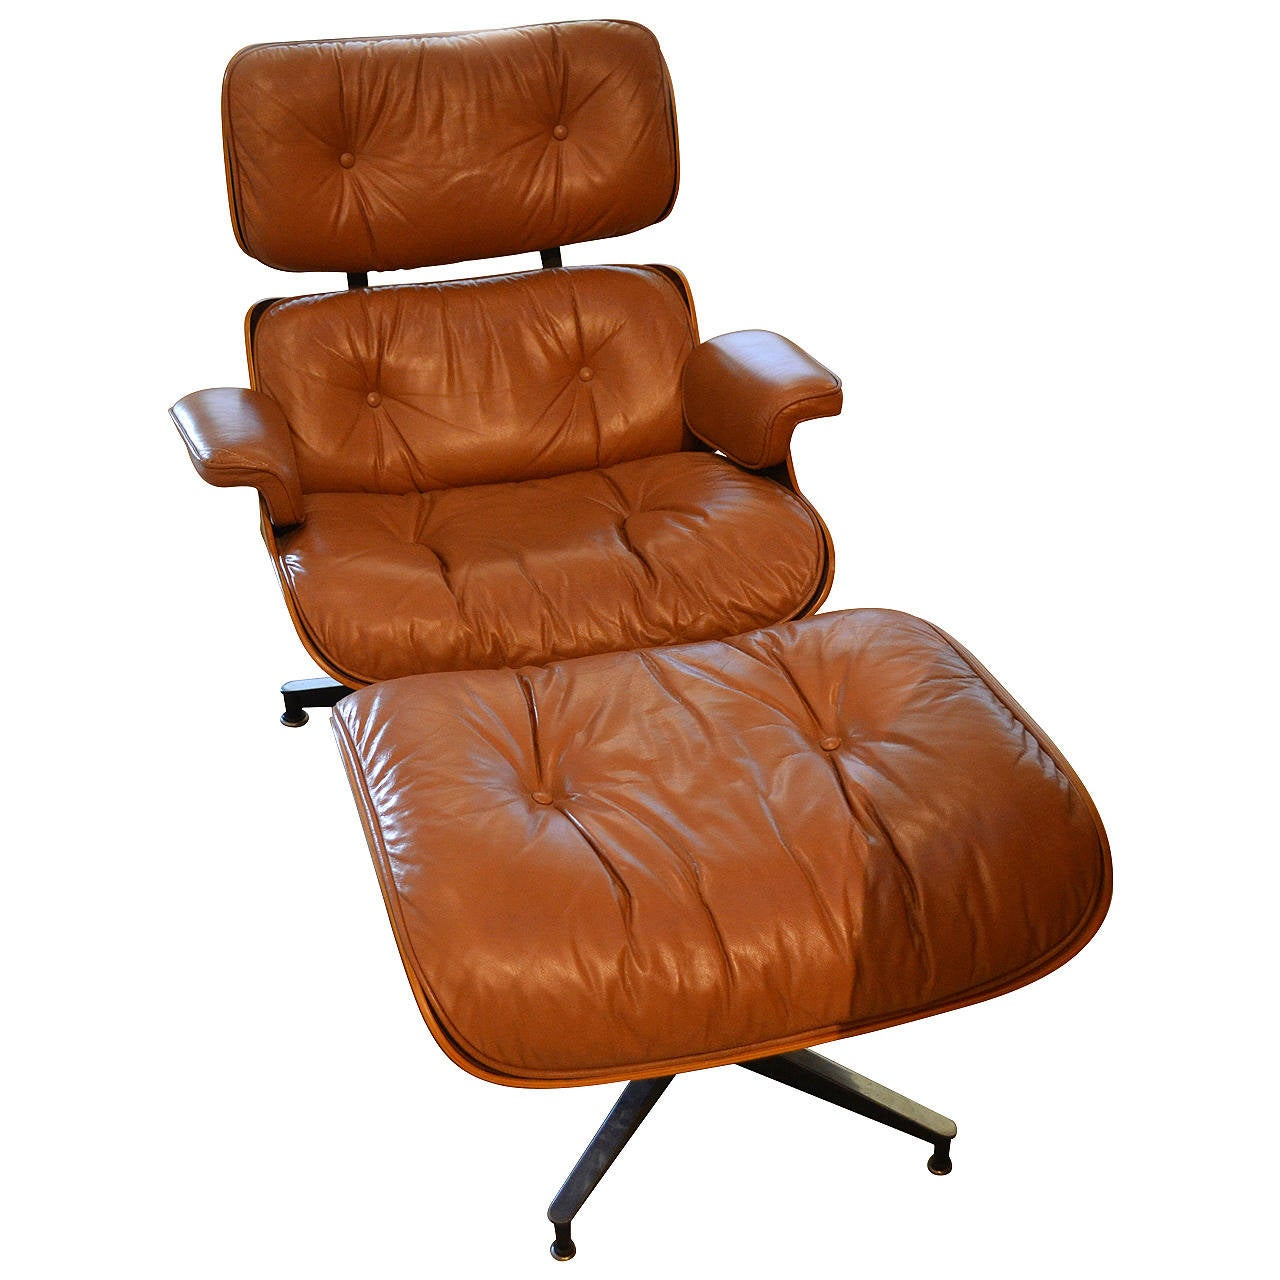 vintage eames lounge chair and ottoman by herman miller at 1stdibs. Black Bedroom Furniture Sets. Home Design Ideas